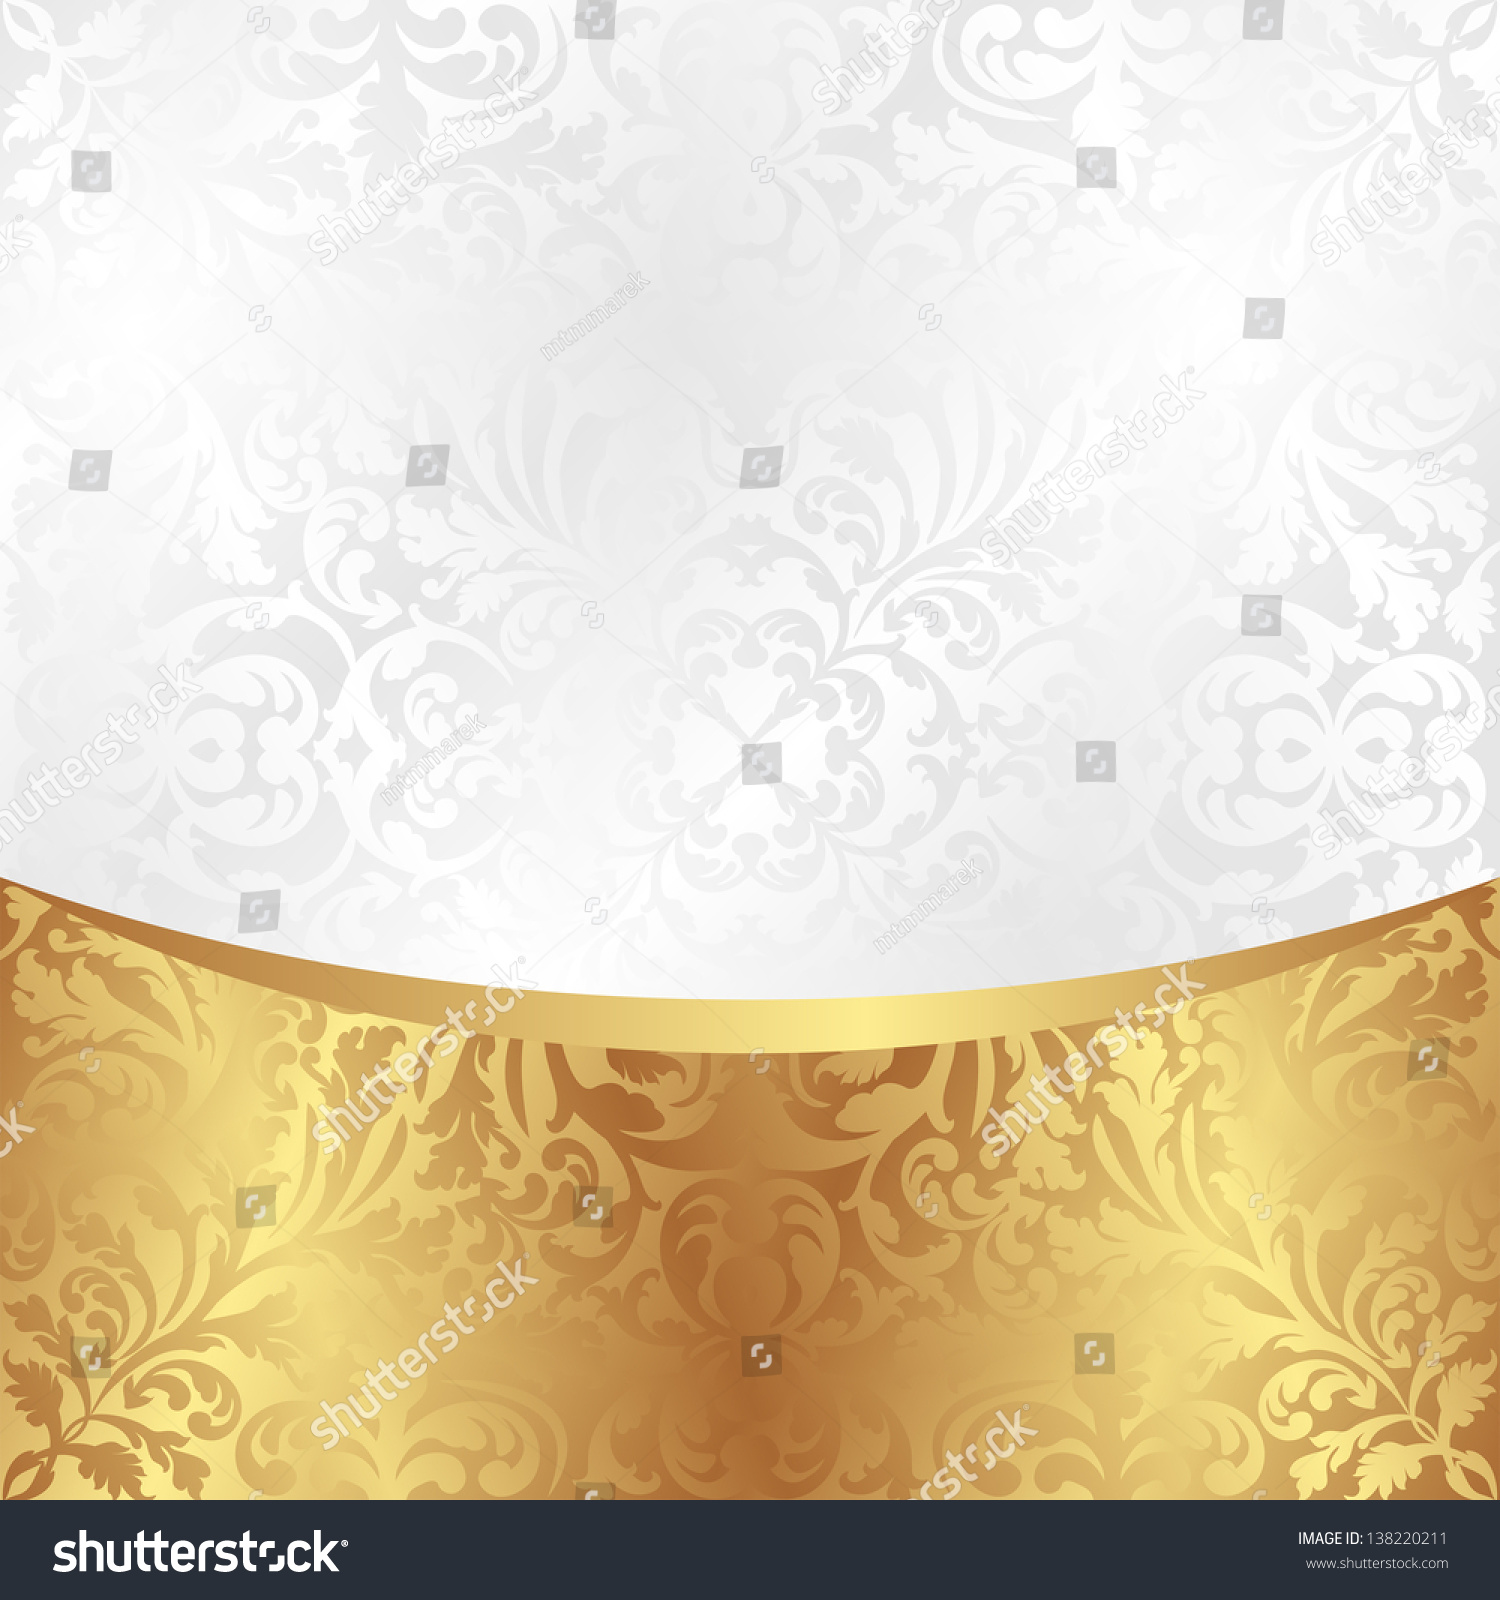 White Gold Background Ornaments Stock Vector 138220211. White Living Room Sets. Outdoor Decorative Trash Cans. Inside Fireplace Decorations. Decorating Art Deco Style. Pergola Decorating Ideas. Grand Dining Room. Rug Decor. Decorative Night Lights For Adults